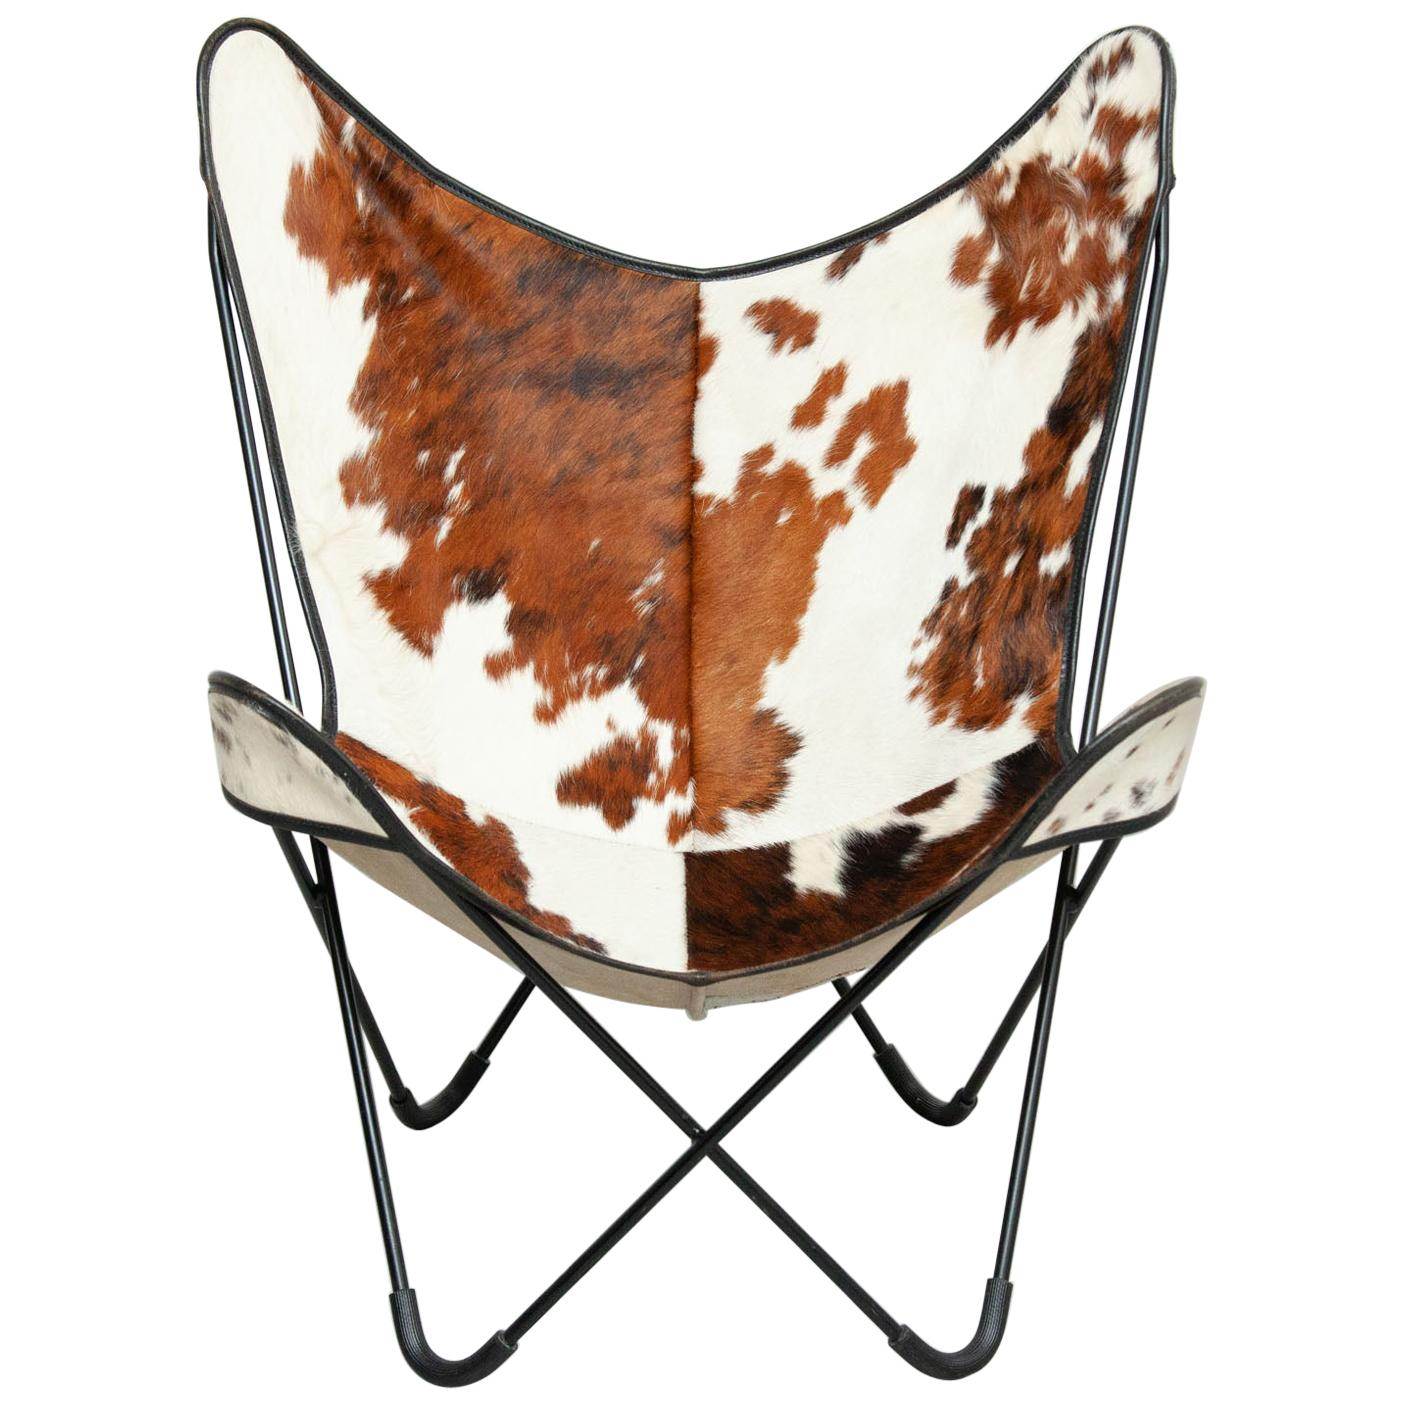 Bkf Butterfly Lounge Pony Leather Chair, circa 1980 by Pep Bonet